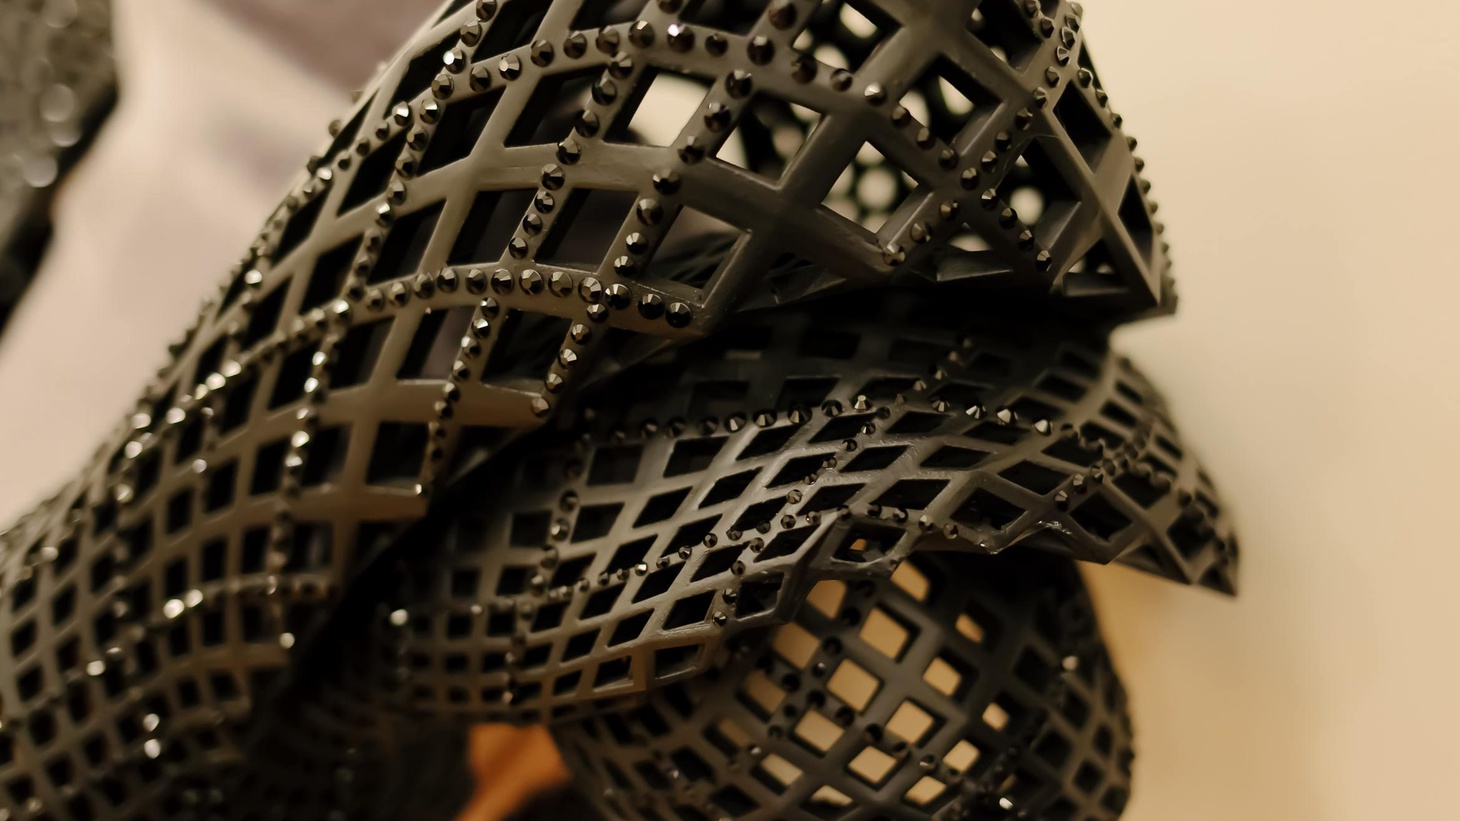 Michael Schmidt has made dresses from Legos and razor blades. Now he is testing 3-D printed plastic. Rose Apodaca talks to the designer about his amazing costumes.